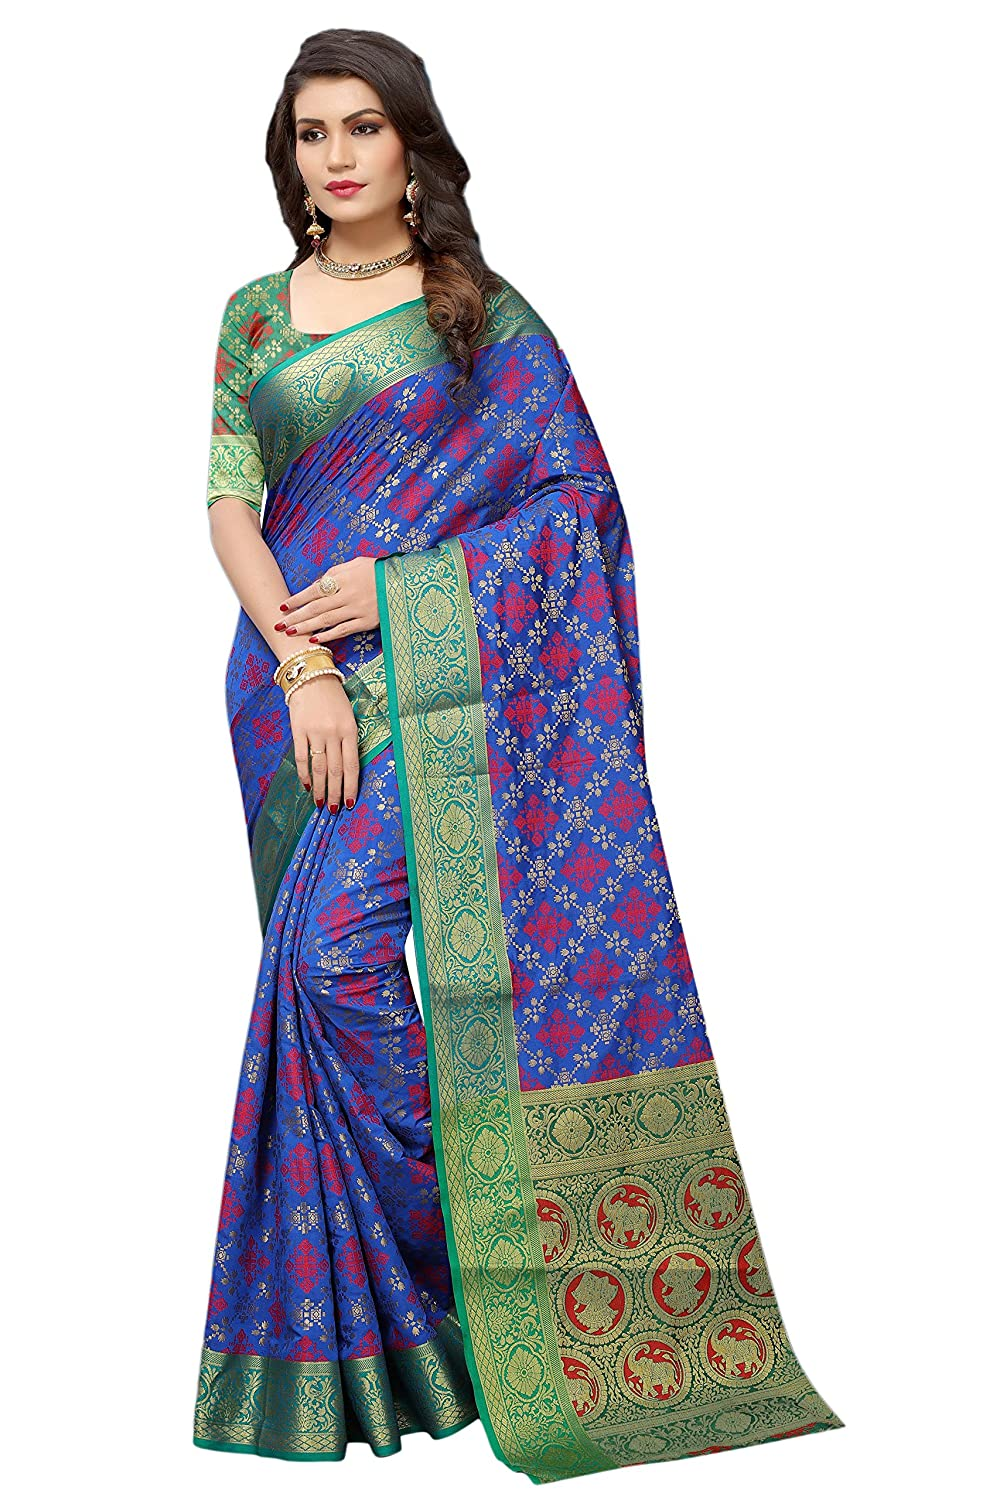 KIMANA Indian Designer Ethnic Bollywood Traditional Banarasi Silk Saree Sari S3093 51003093